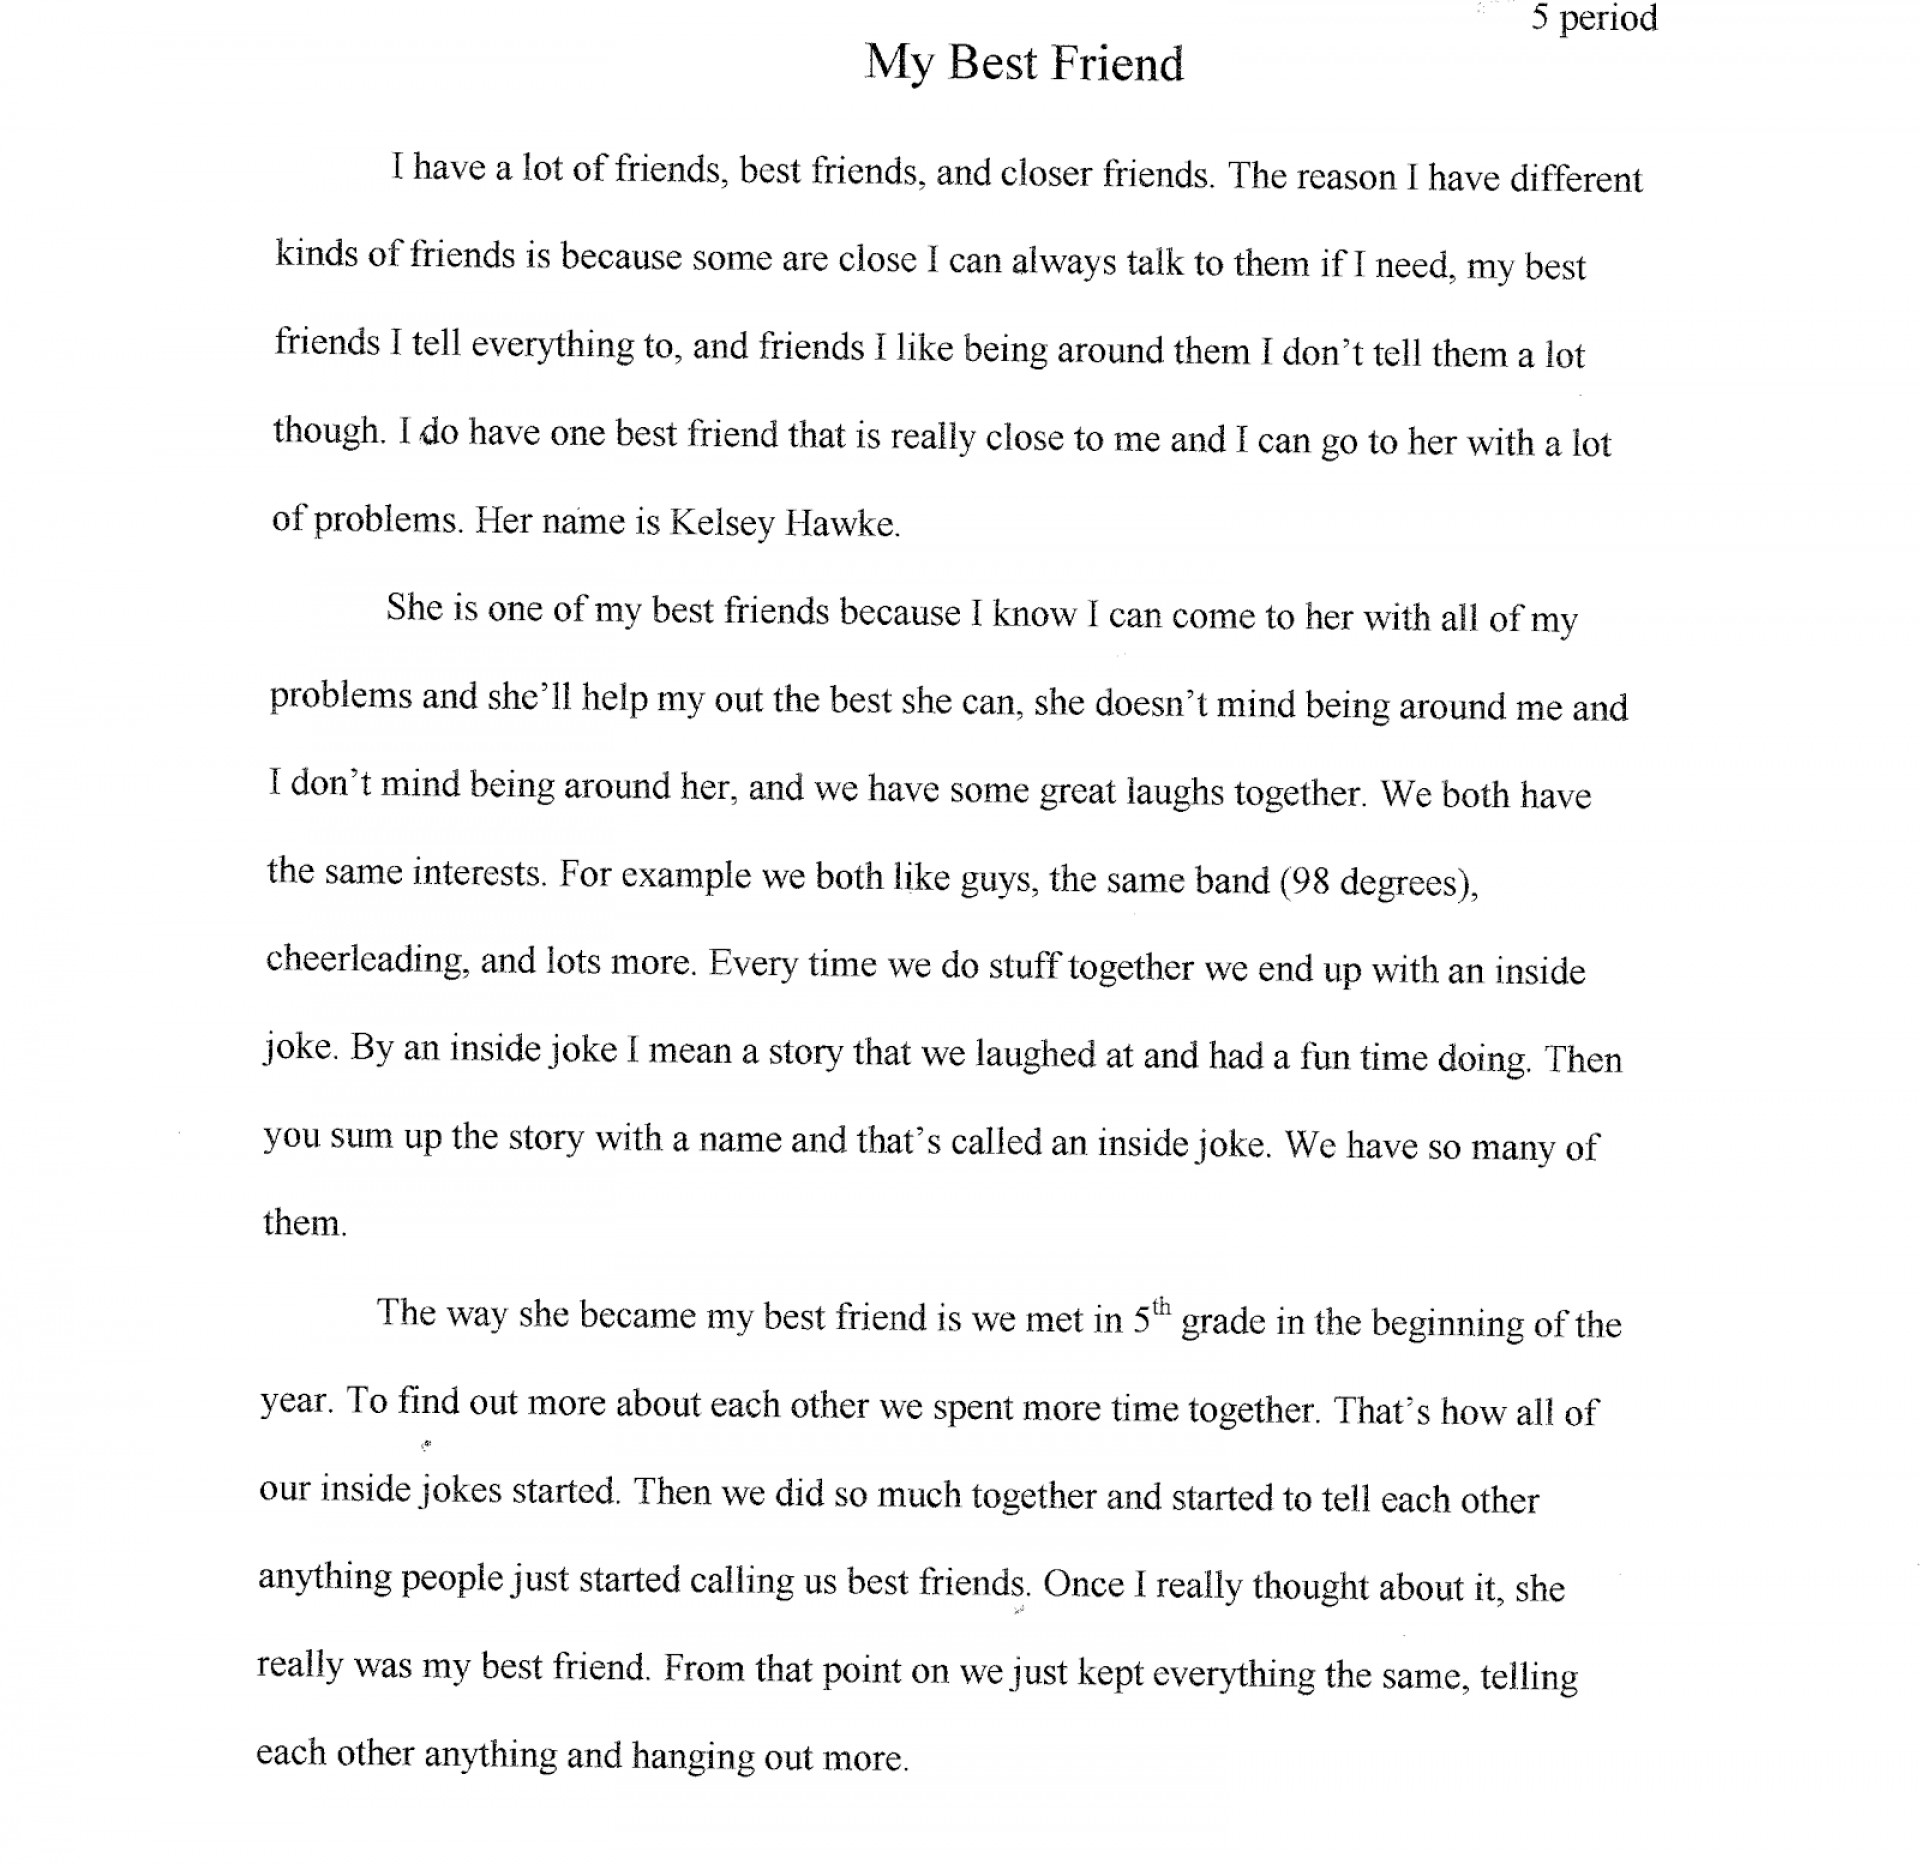 023 Essay Example 6th Bestfriend Post1 Outstanding Childhood My 150 Words Ideas Examples 1920